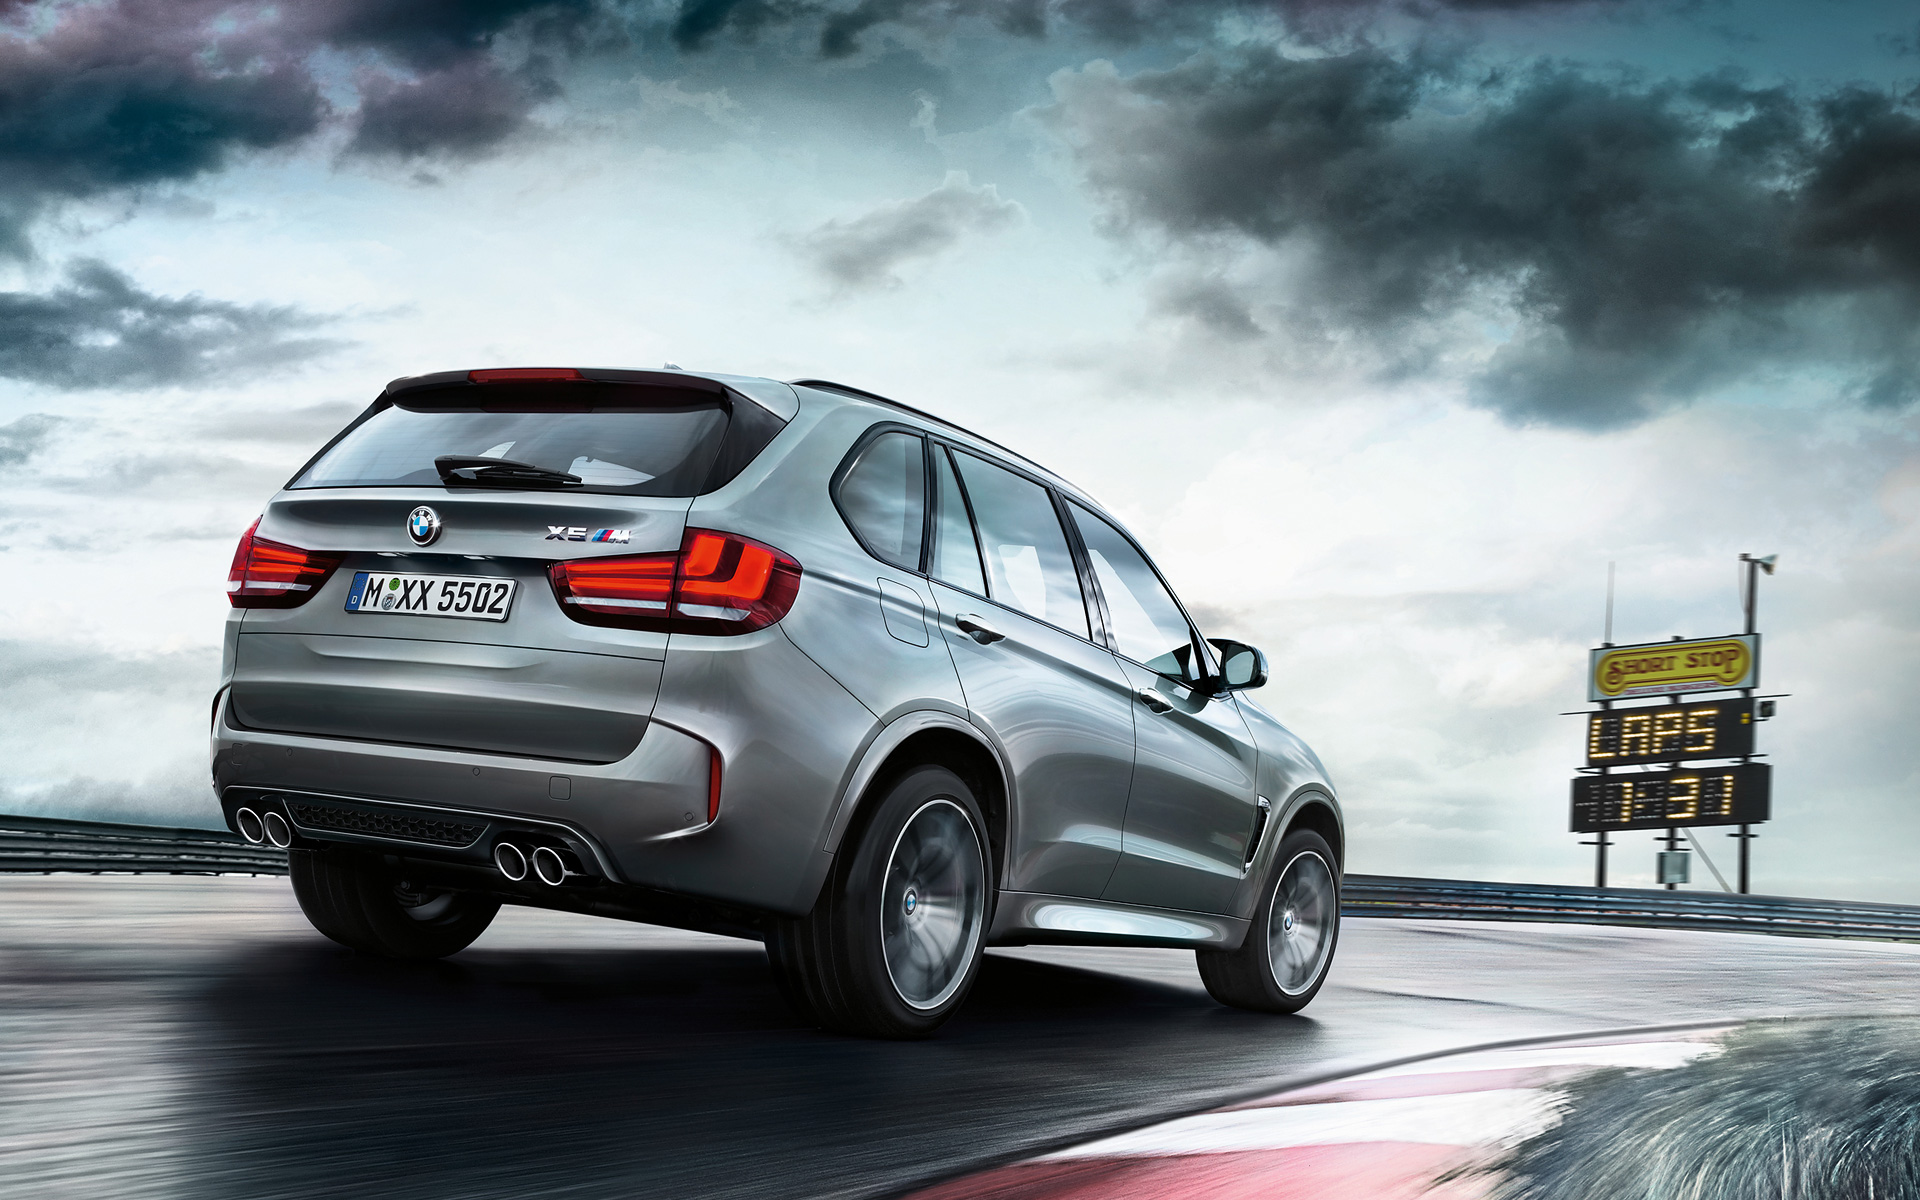 BMW X5 M Rear View racetrack driving